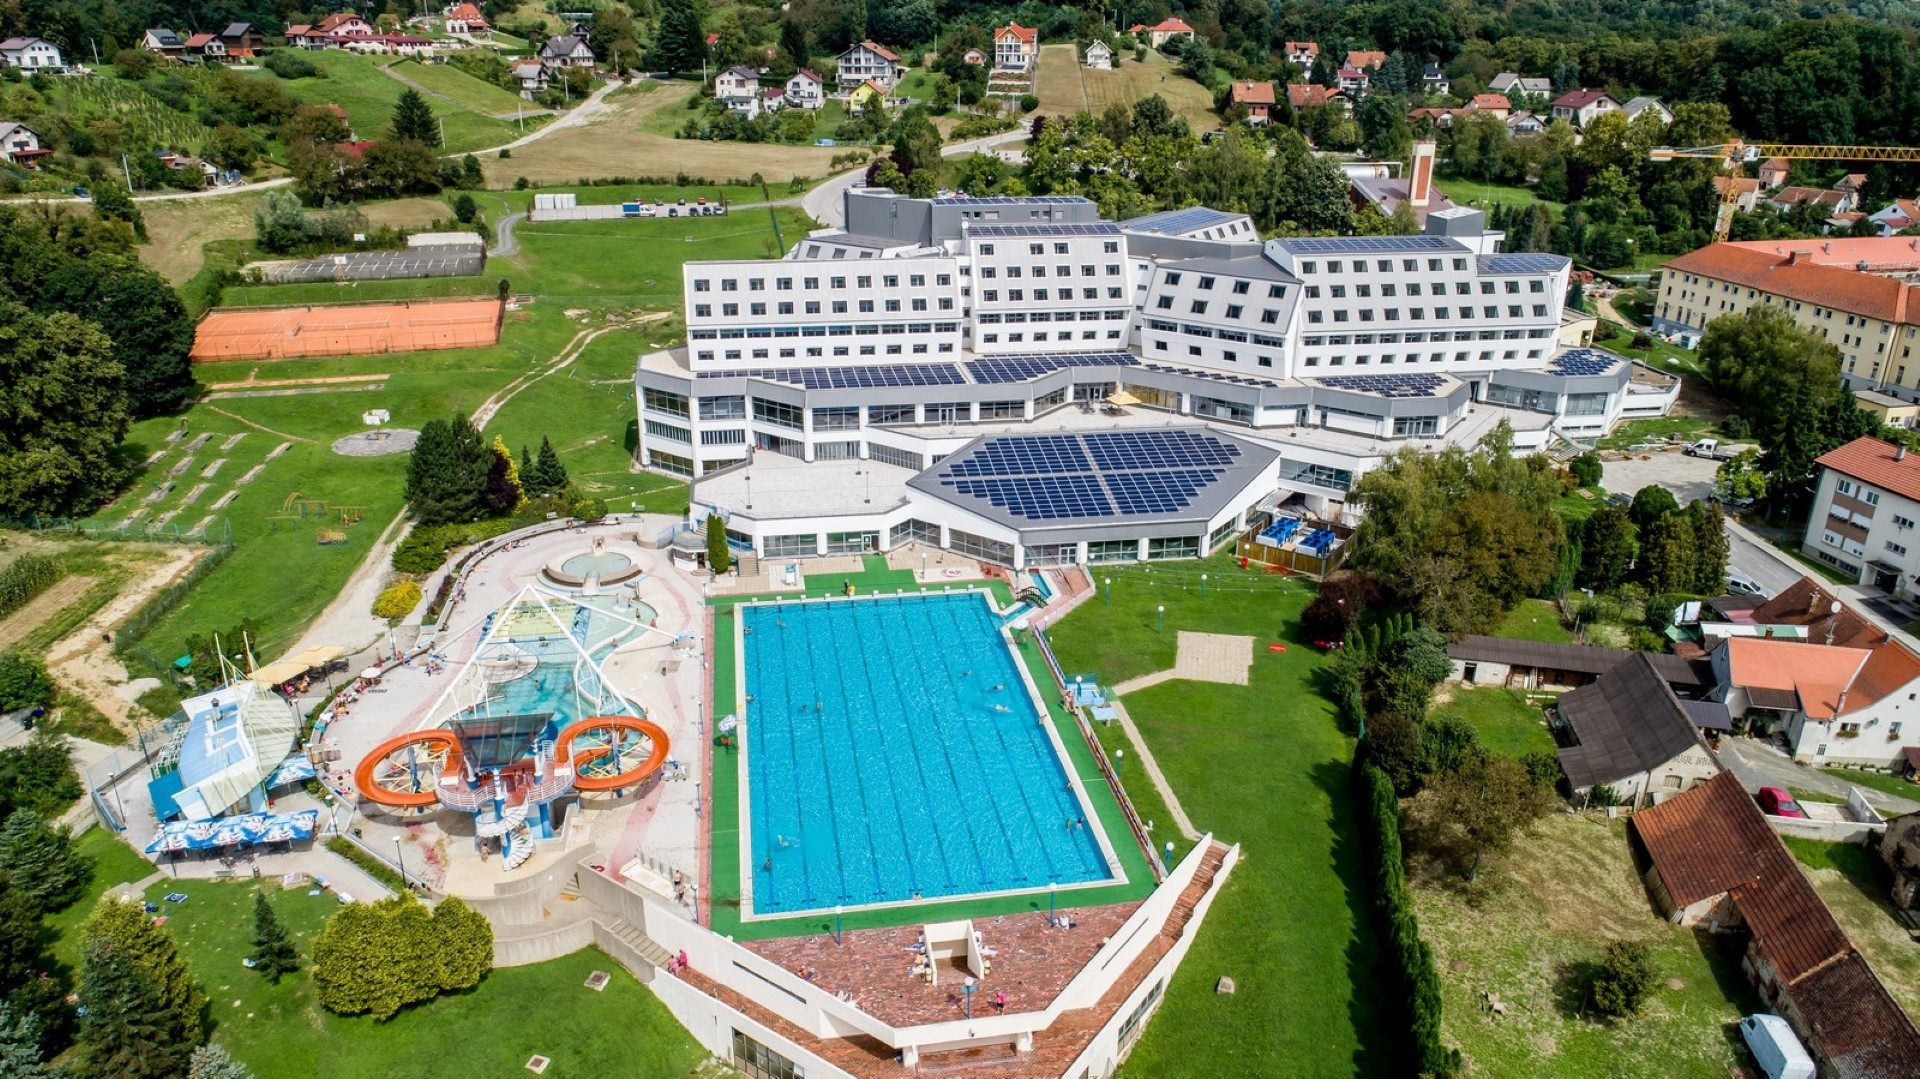 18.Spa resort varazdinske toplice